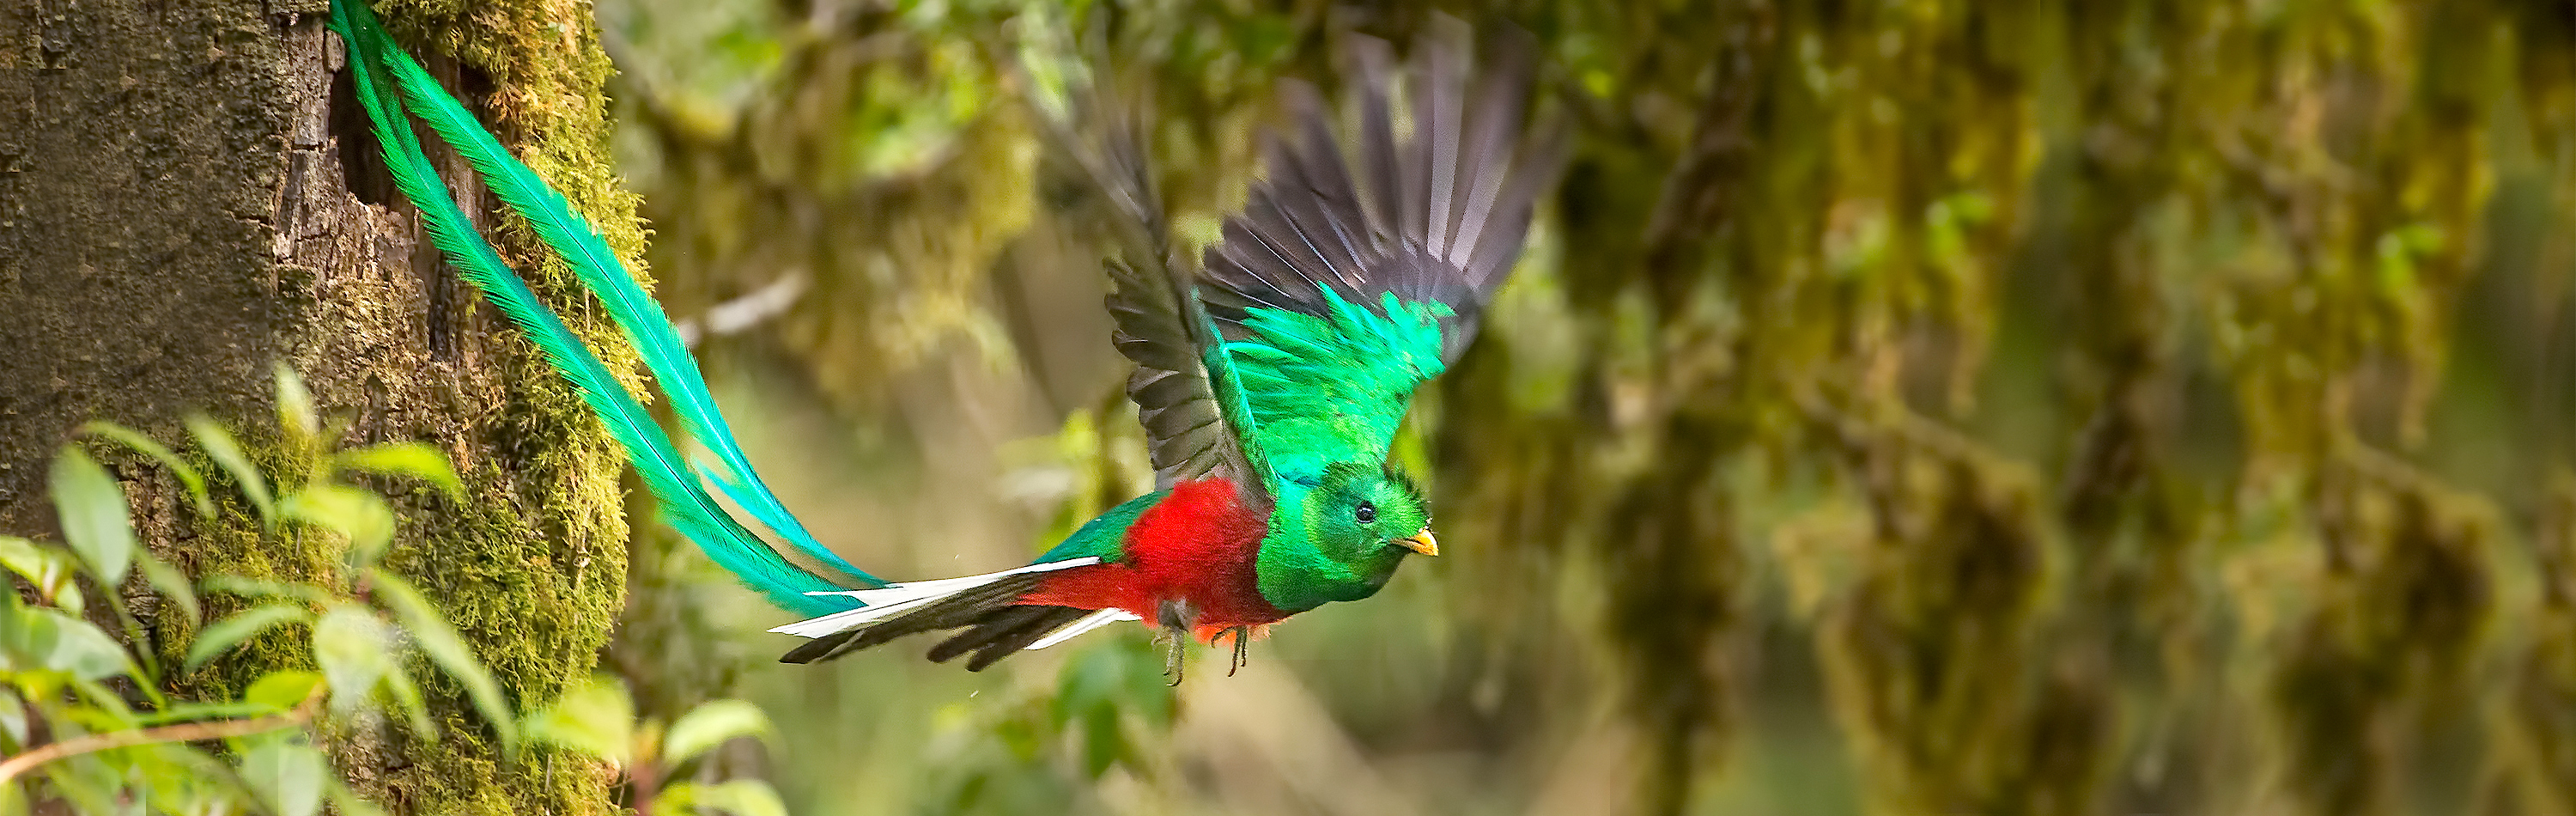 Costa Rica Tour - Male Resplendent Quetzal in Flight